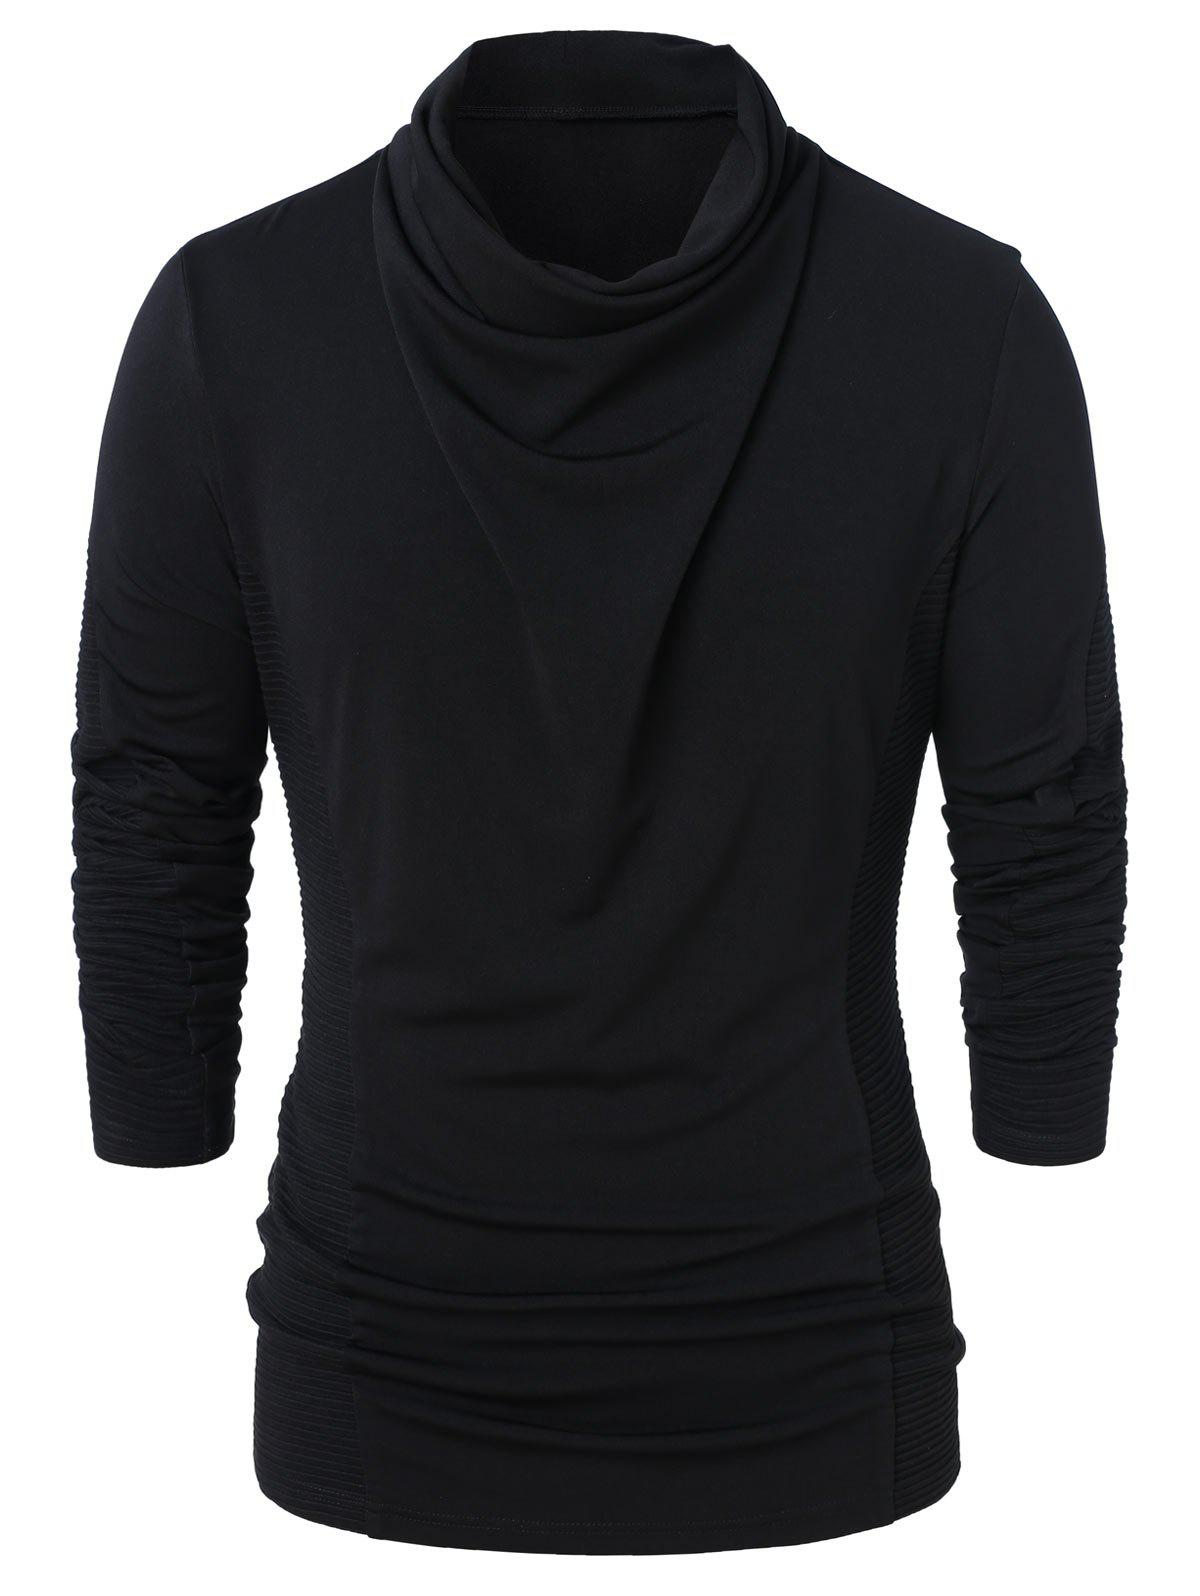 Cowl Neck Long Sleeve Solid Top - BLACK 2XL